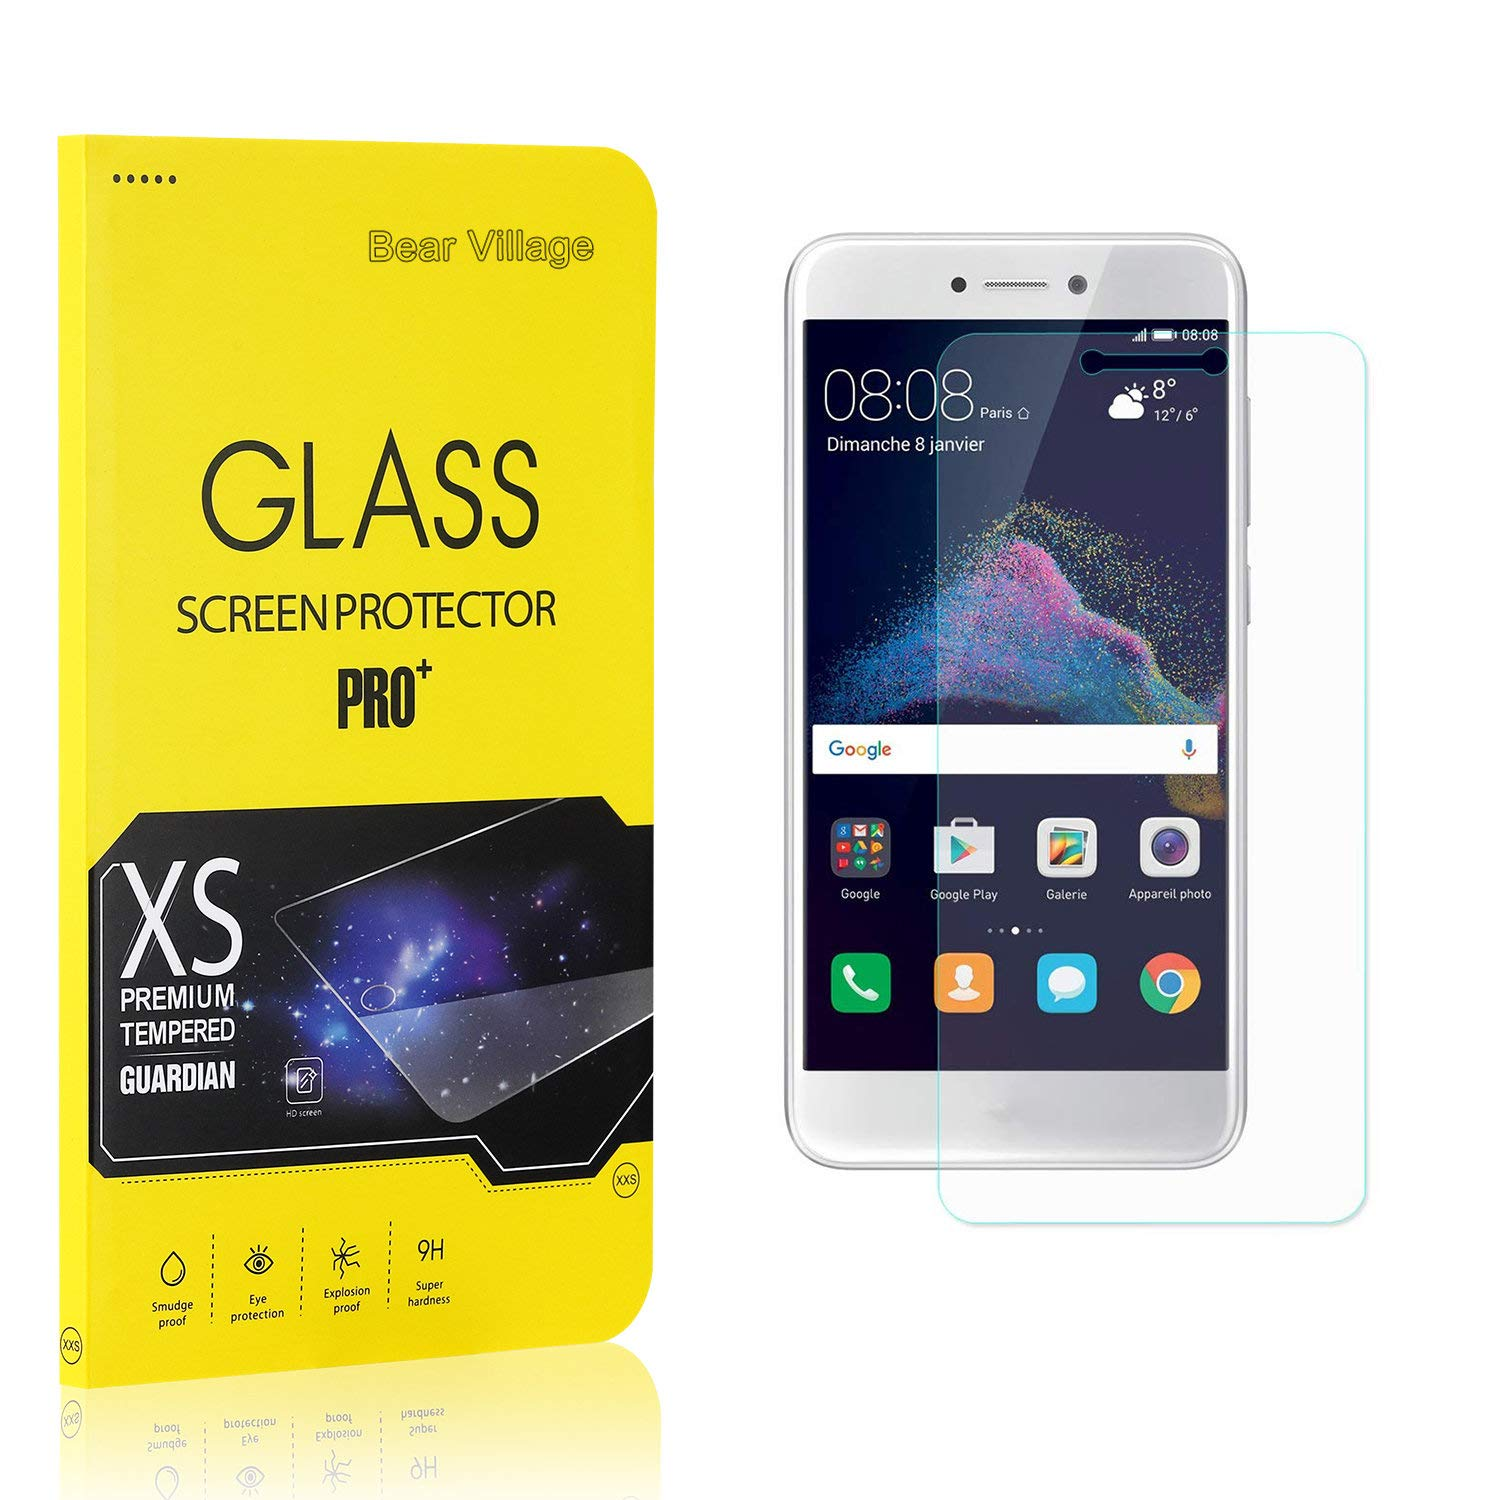 Screen Protector Max 58% OFF for Huawei P8 Lite Village Anti wholesale Bear Scra 2017